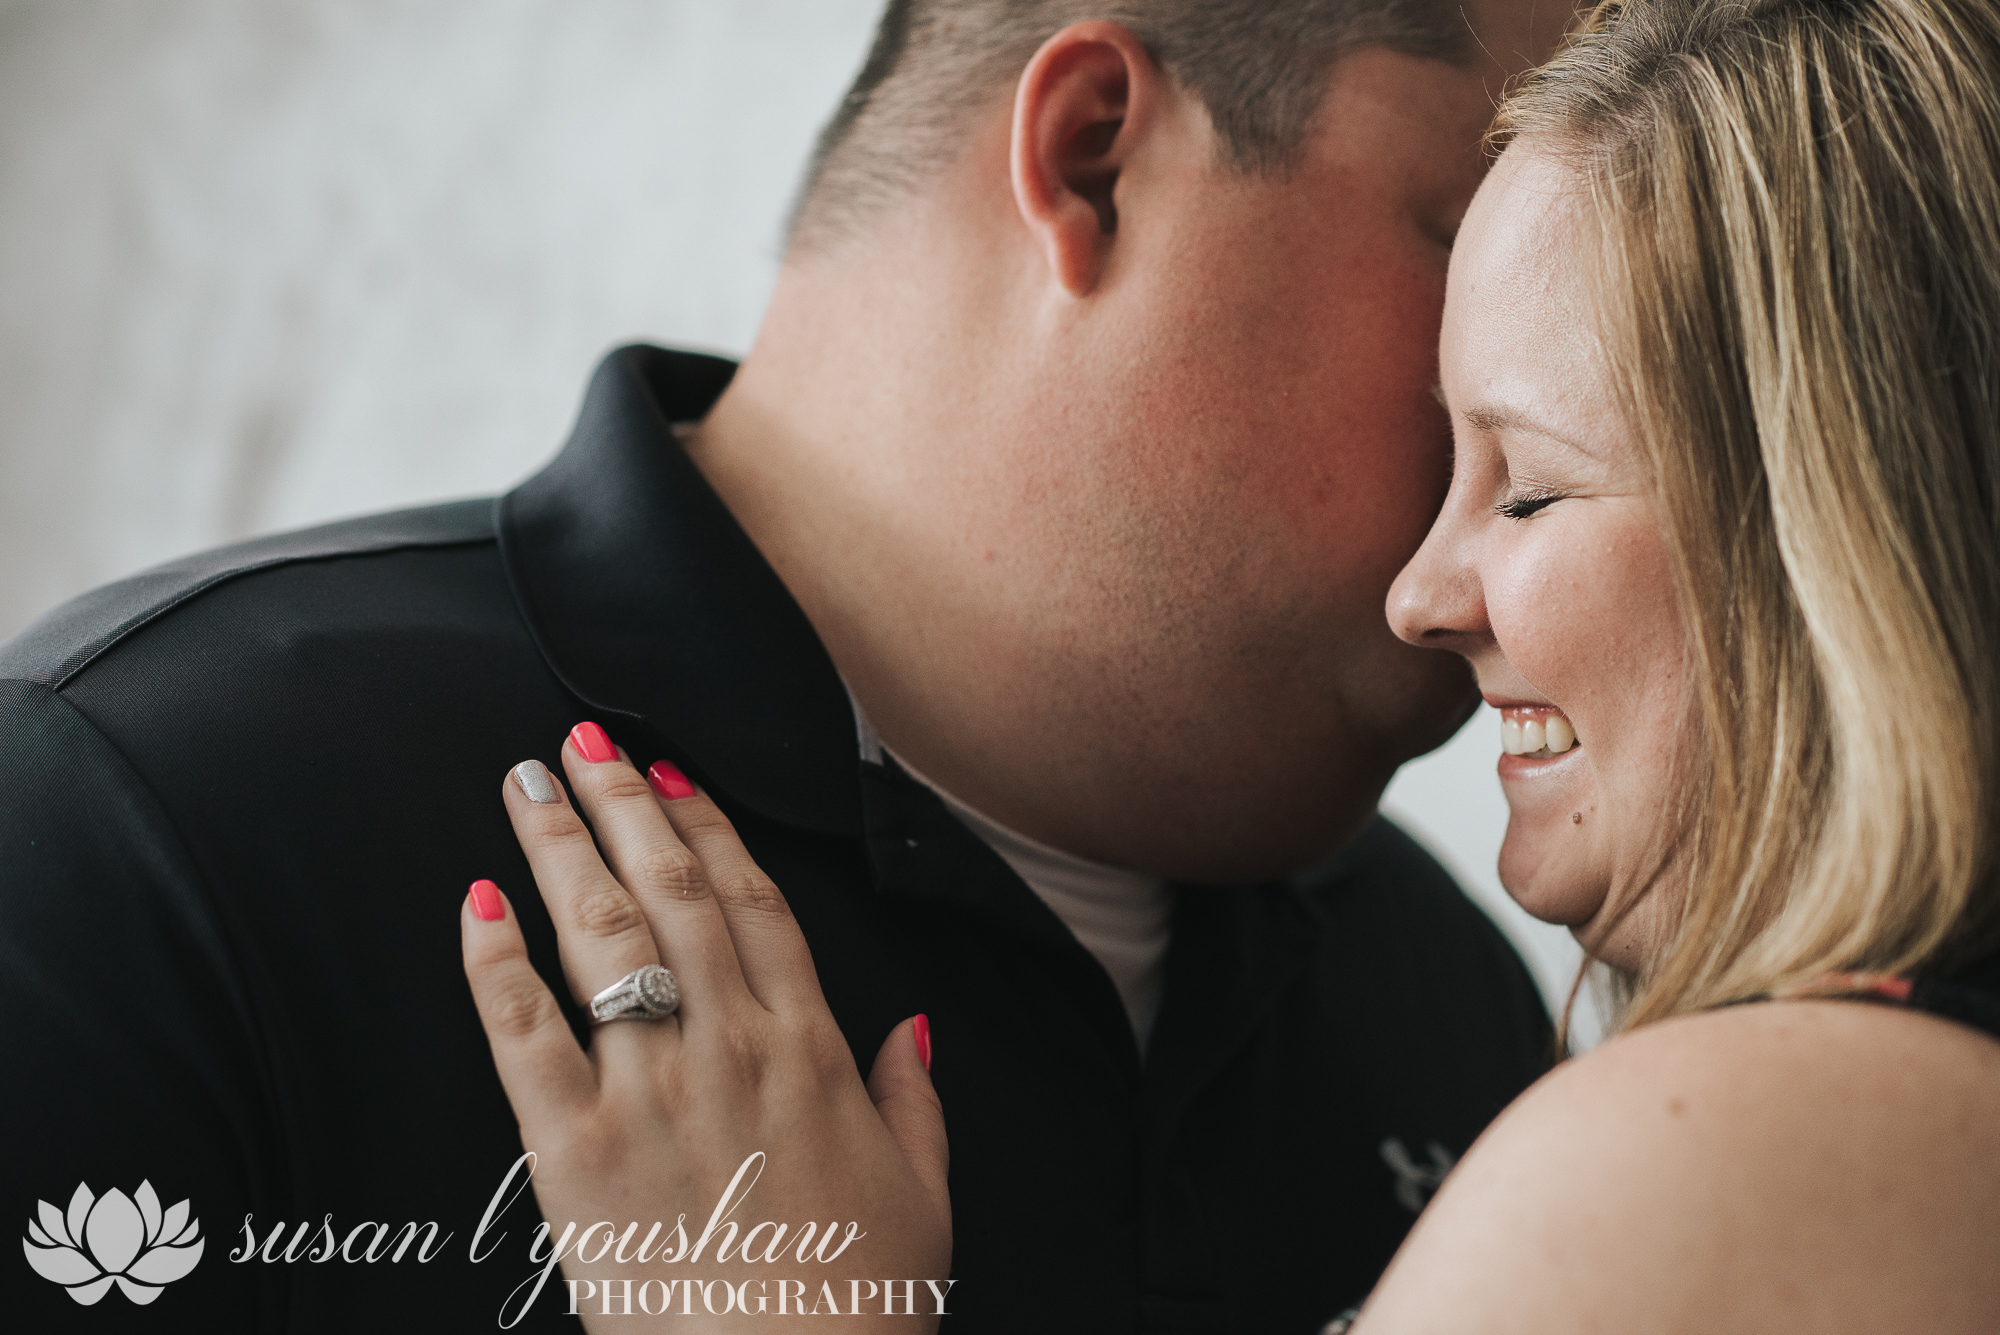 BLOG Love Mini Sessions 06-28-2018 SLY Photography LLC-8.jpg